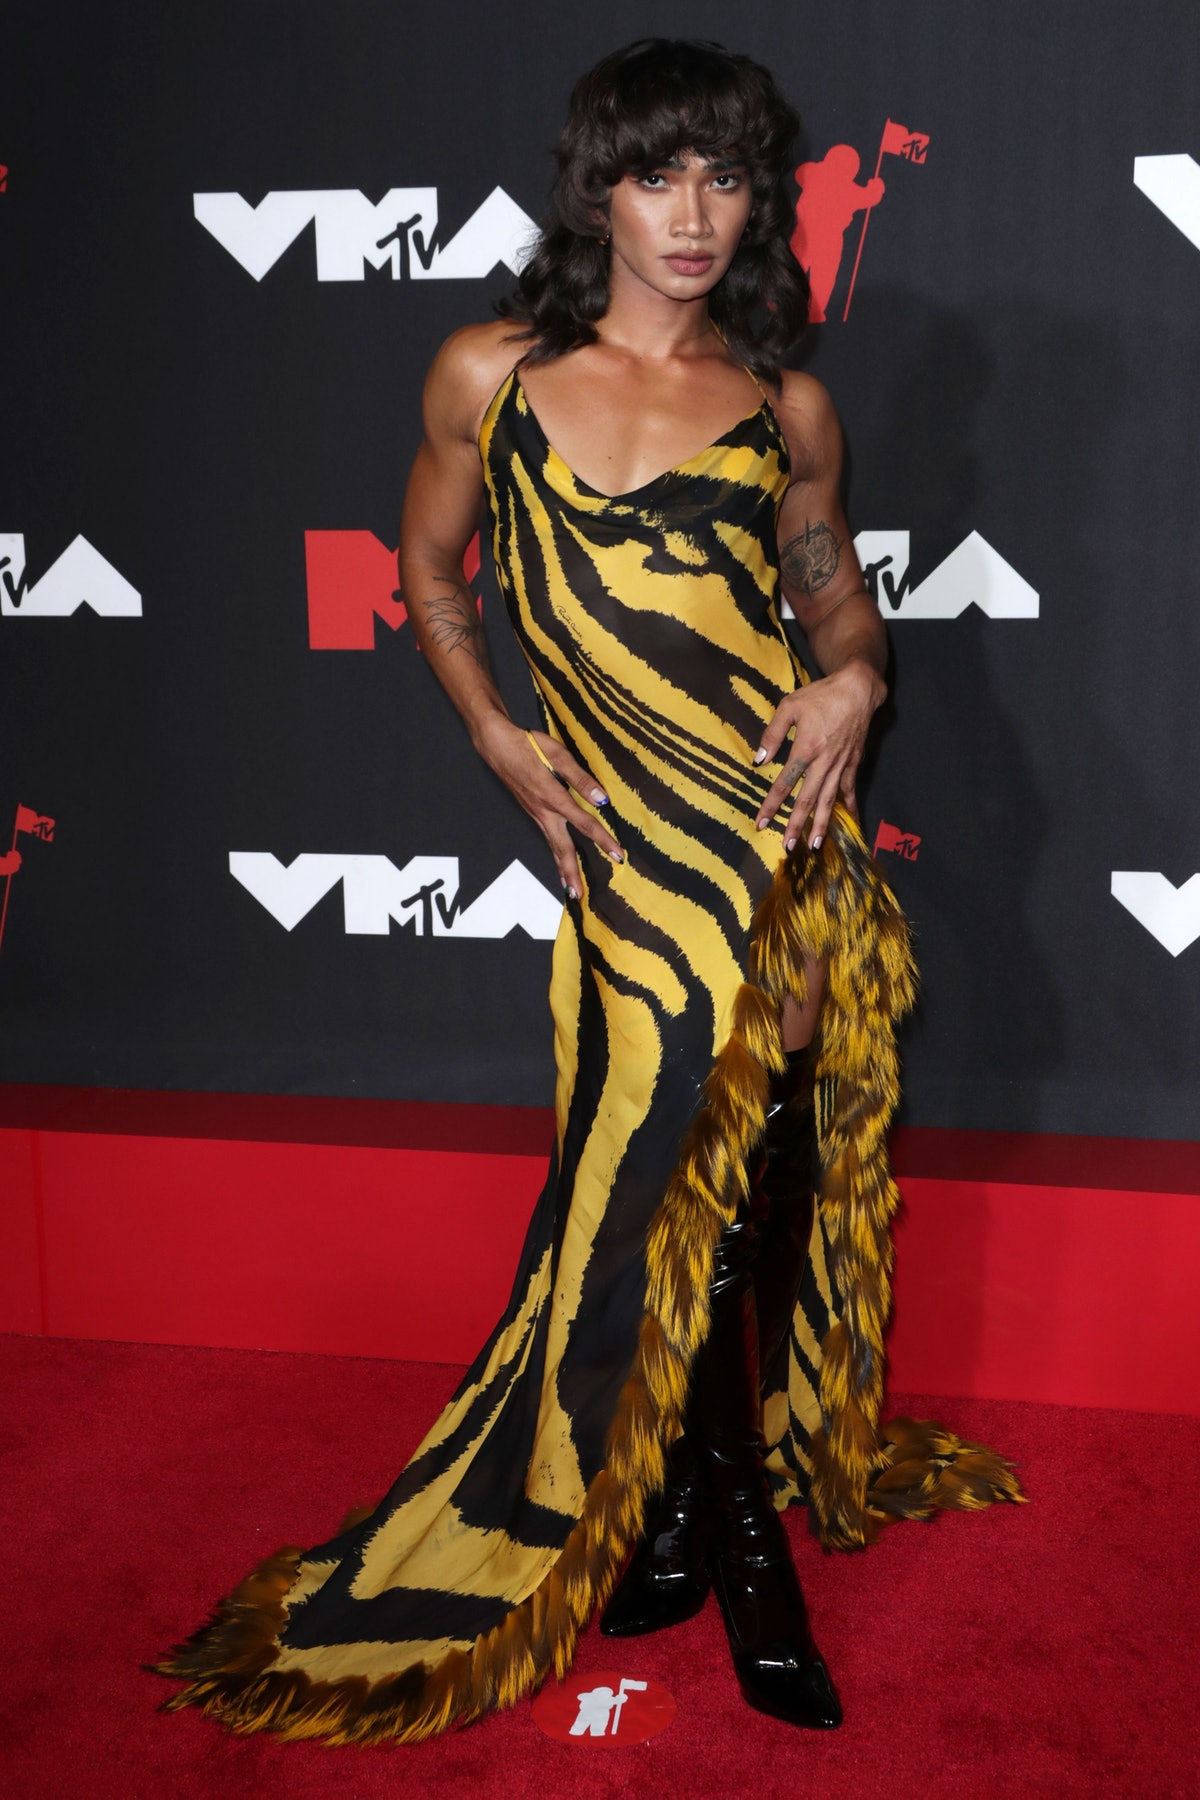 Bretman Rock at the 2021 VMAs in a yellow-and-black dress that Aaliyah wore to the 2001 VMAs.